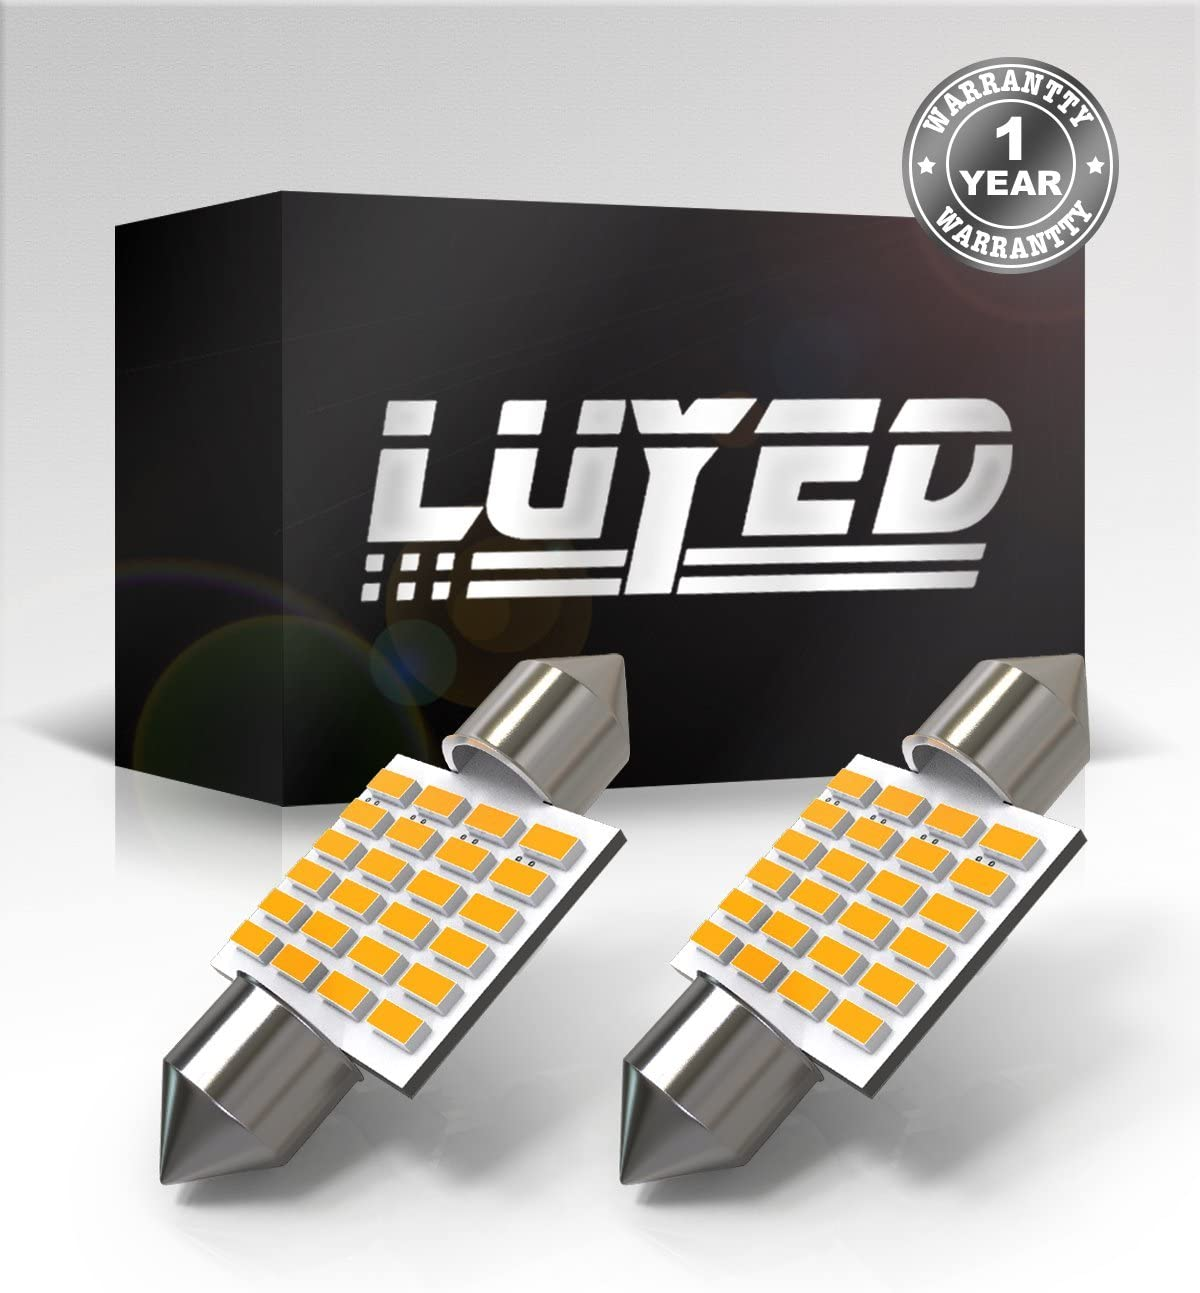 LUYED 2 X 300 Lumens Super Bright 3014 24-EX Chipsets 1.25 inches DE3175 DE3021 DE3022 3175 LED Bulbs Used For Dome light,Warm White